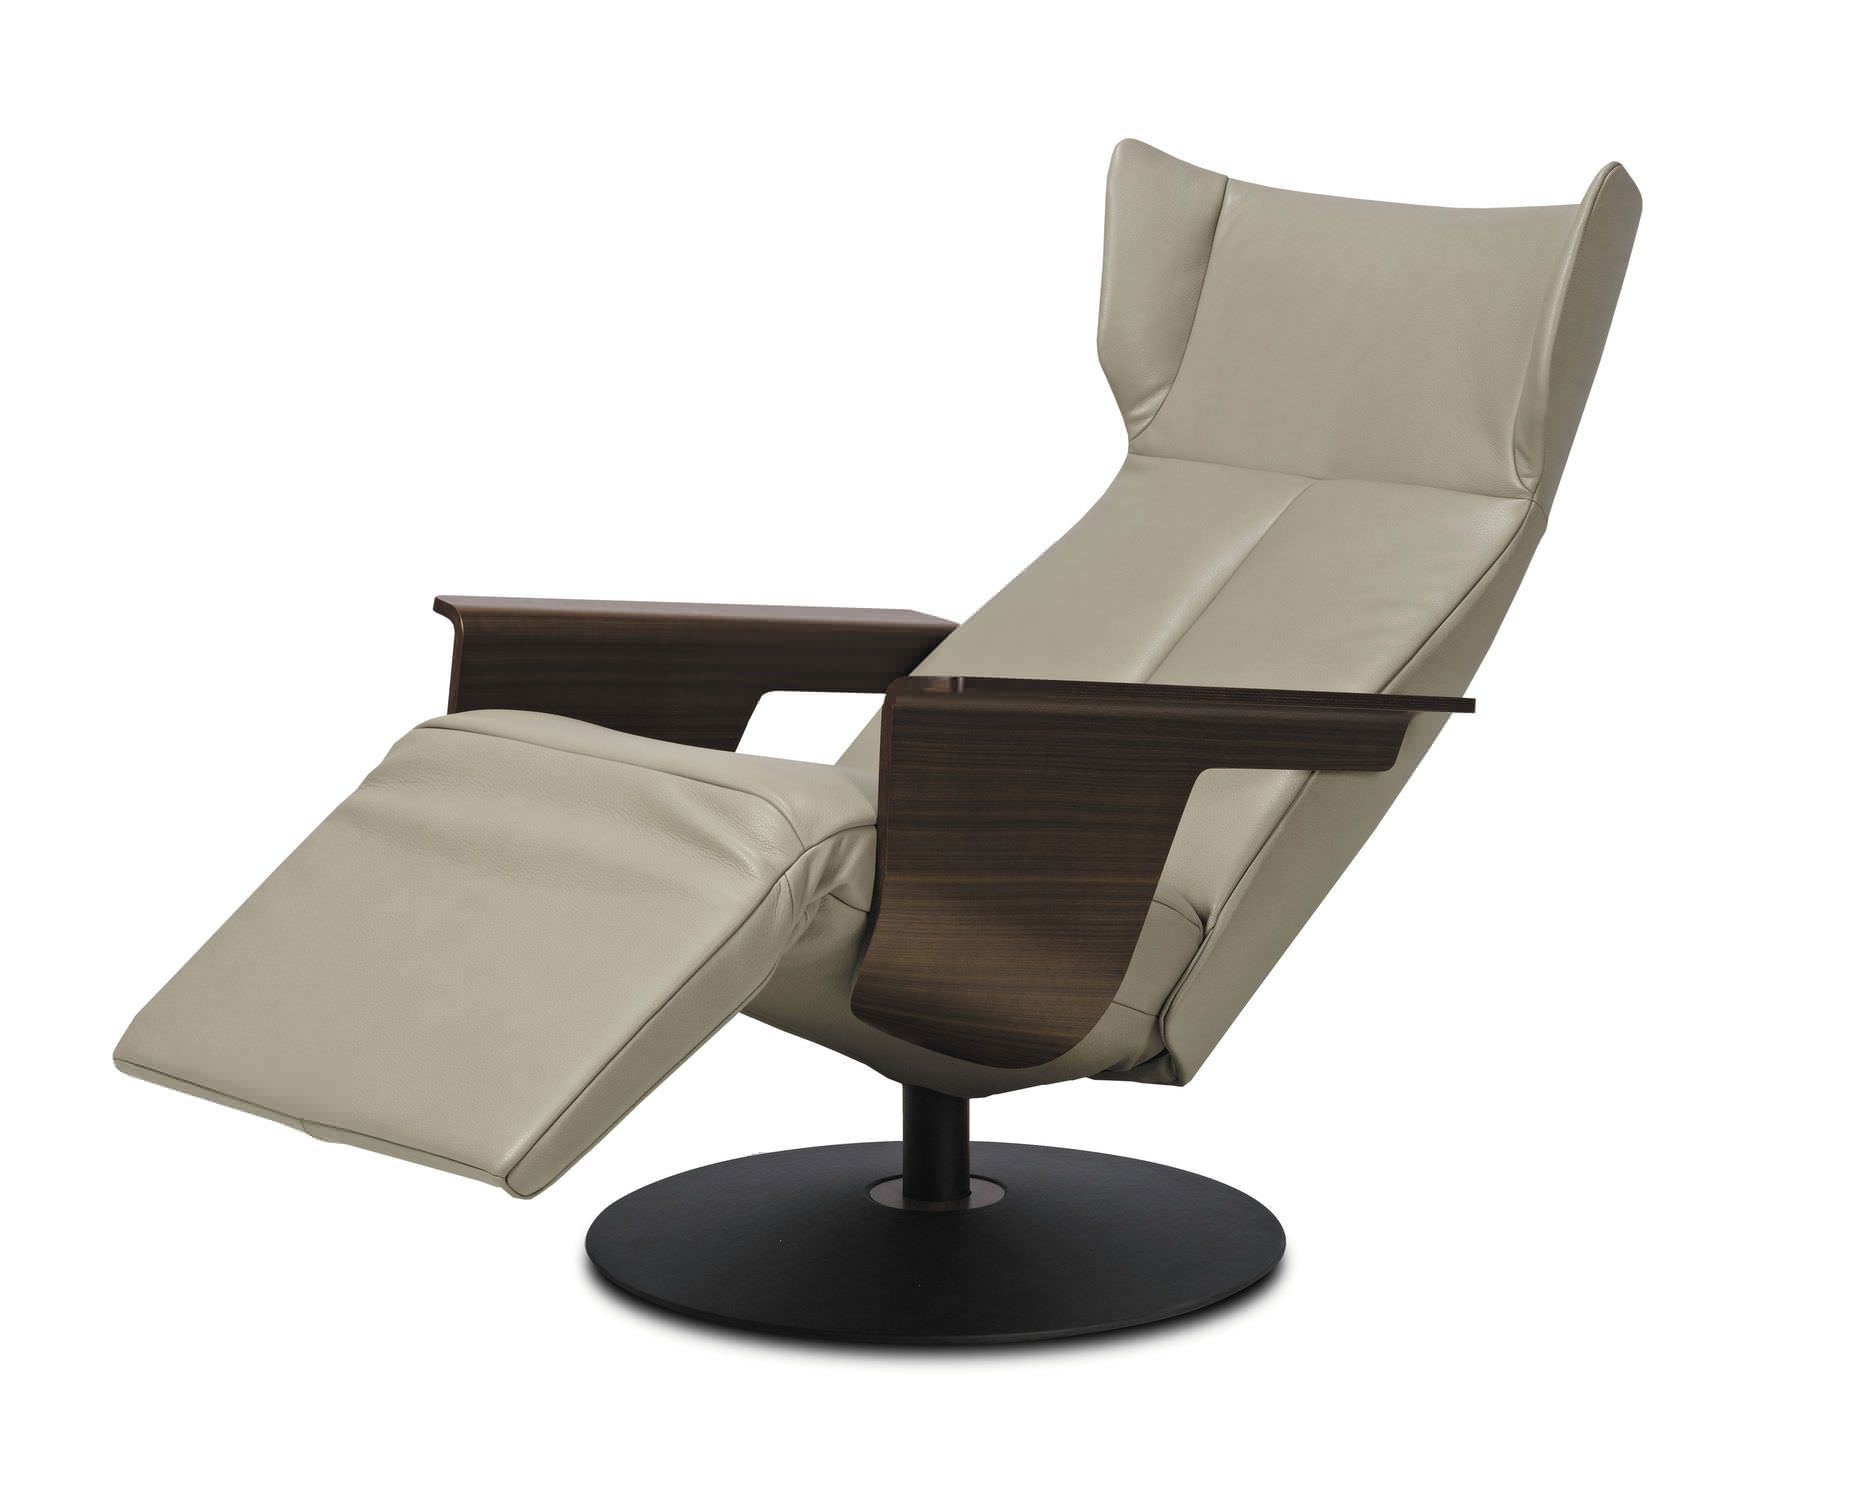 Moderner Fernsehsessel Furniture: Contemporary Reclining Leather Armchair With Footstool | Contemporary Recliner Chairs | Moderne Liegestühle, Sessel, Relaxliege